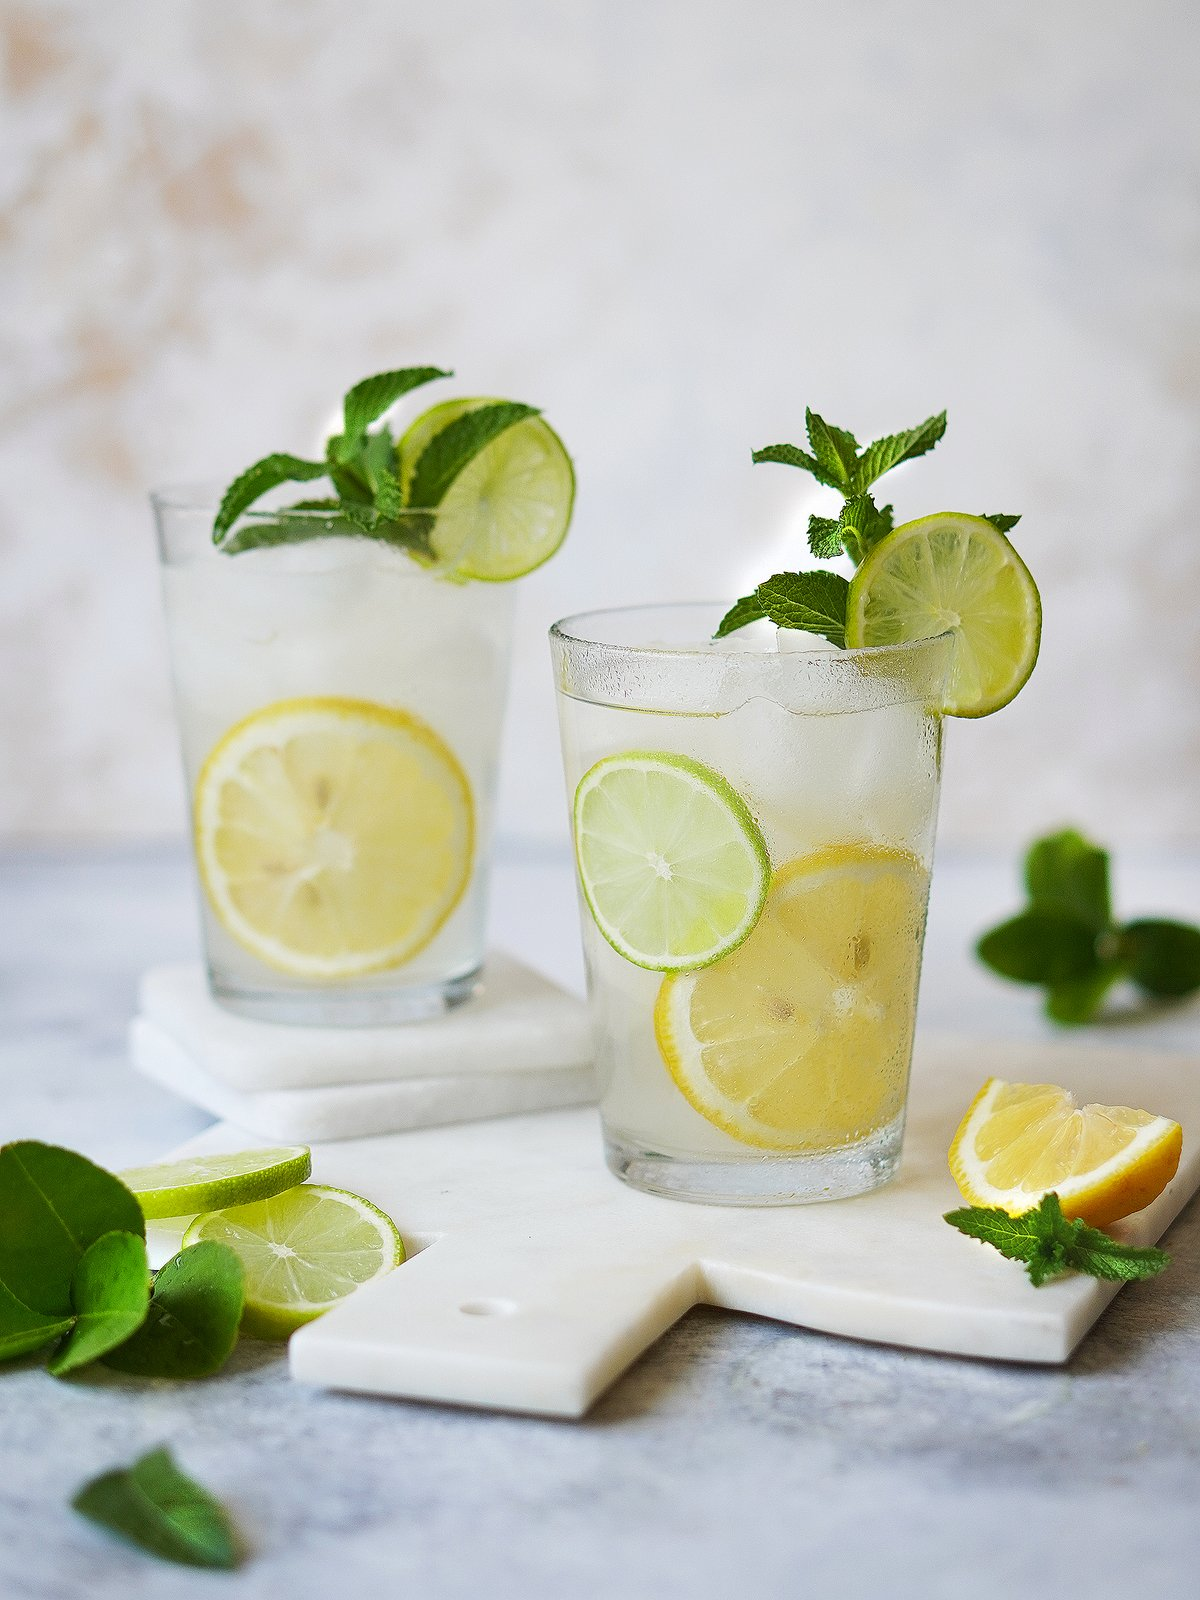 Two glasses filled with a clear drink and lemons & limes as garnish